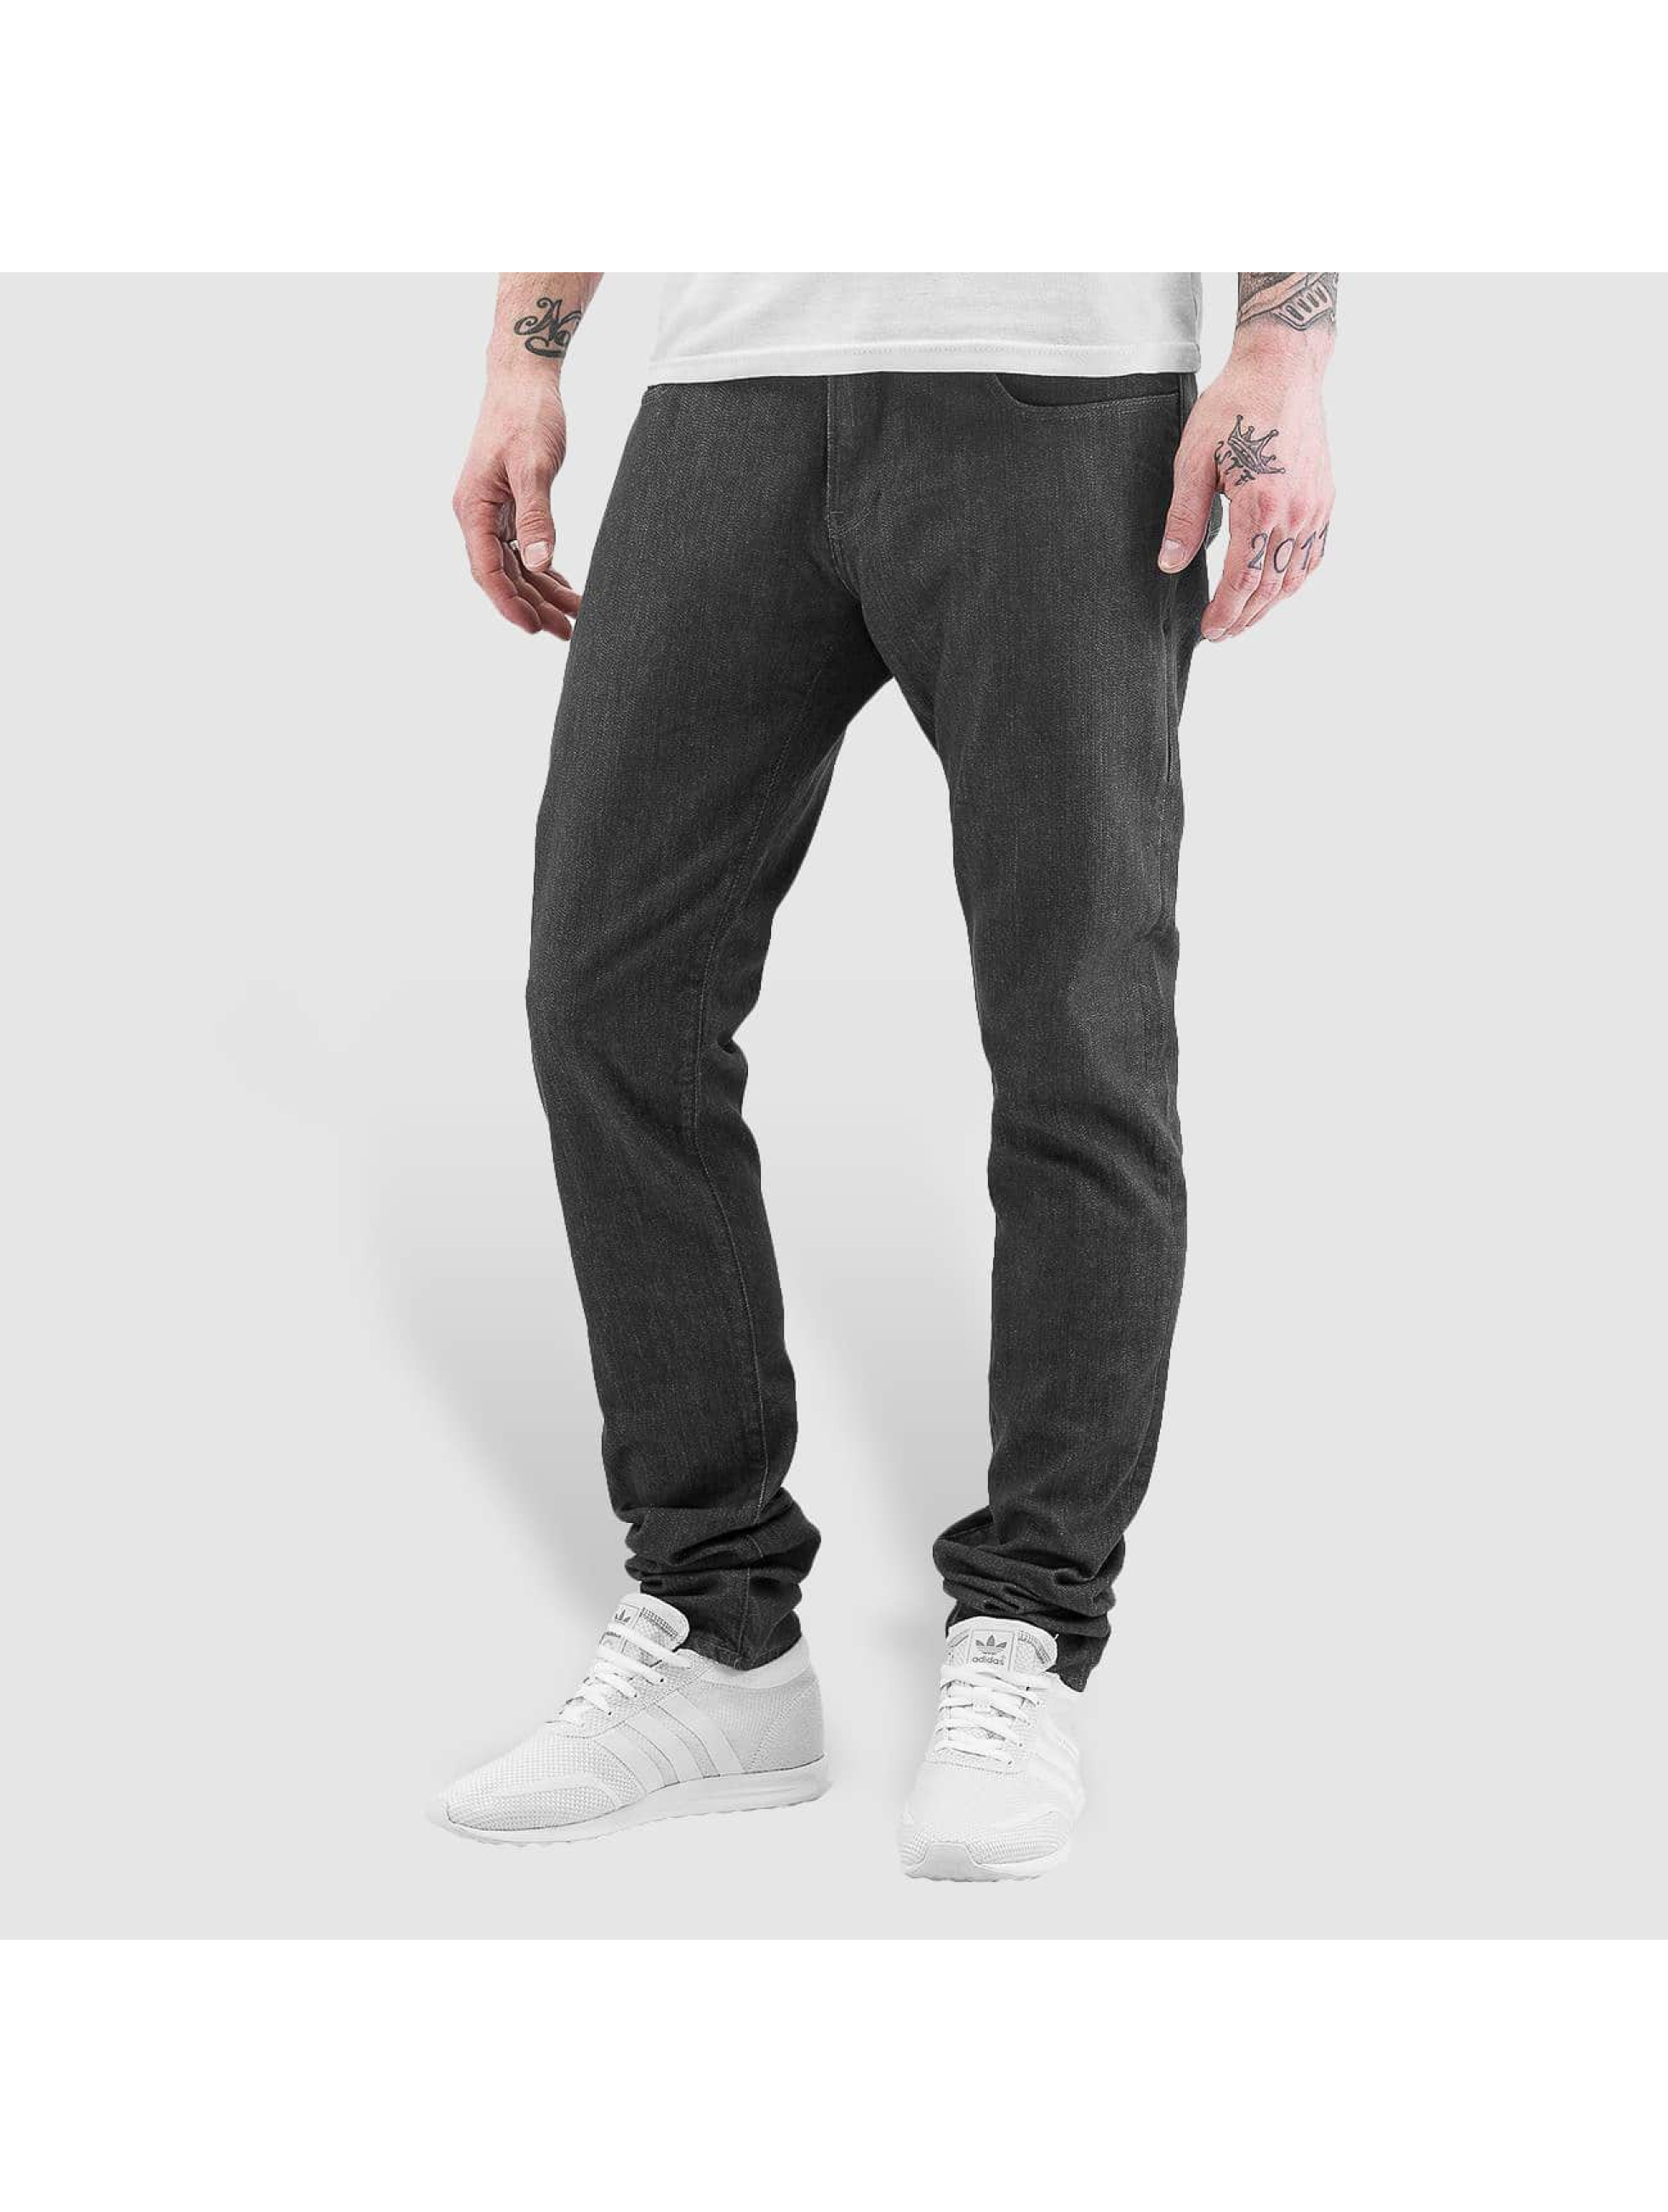 G-Star Jean coupe droite 3301 Deconstructed gris